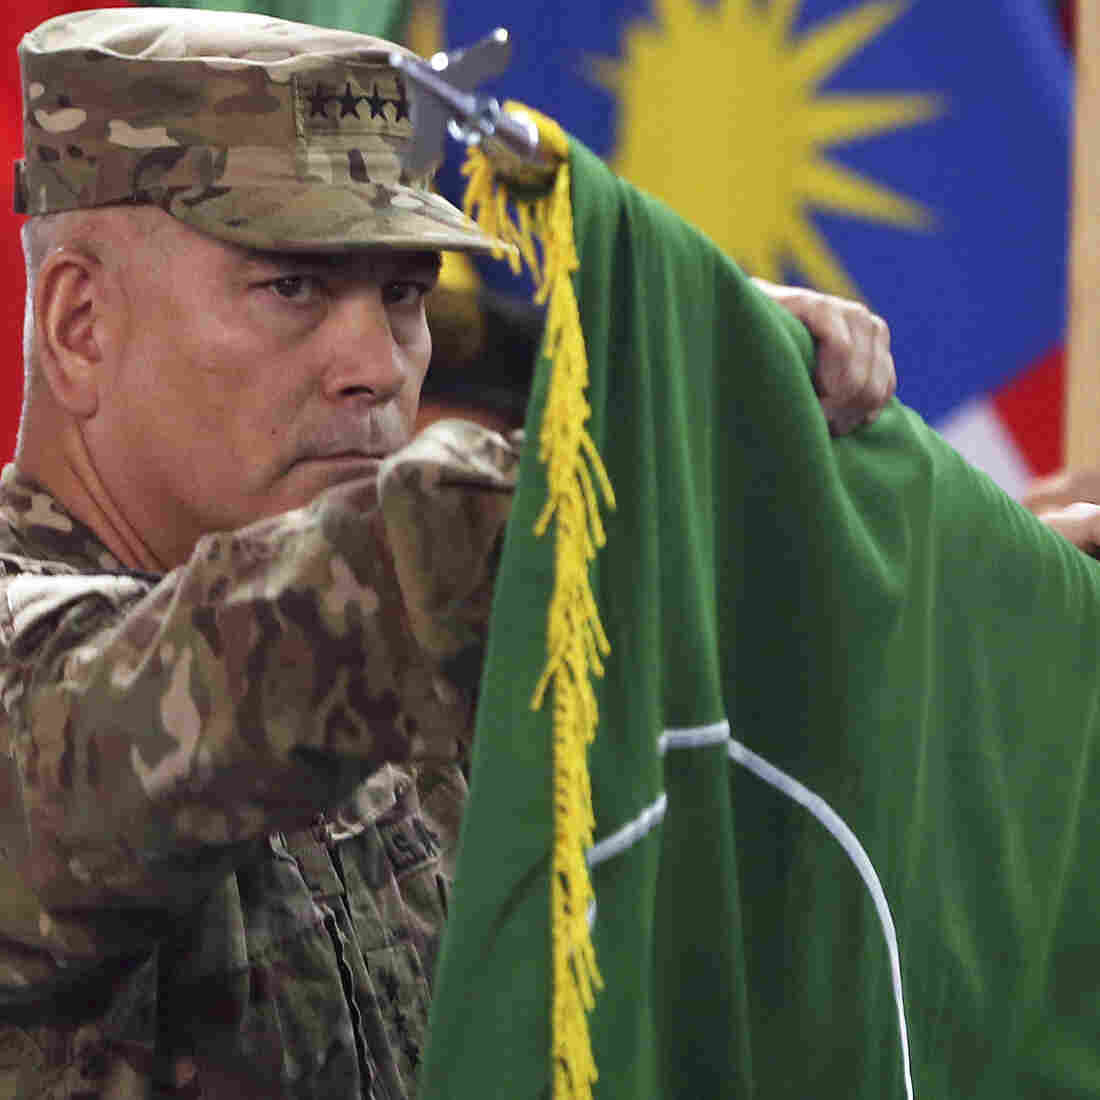 Ceremony In Afghanistan Officially Ends America's Longest War